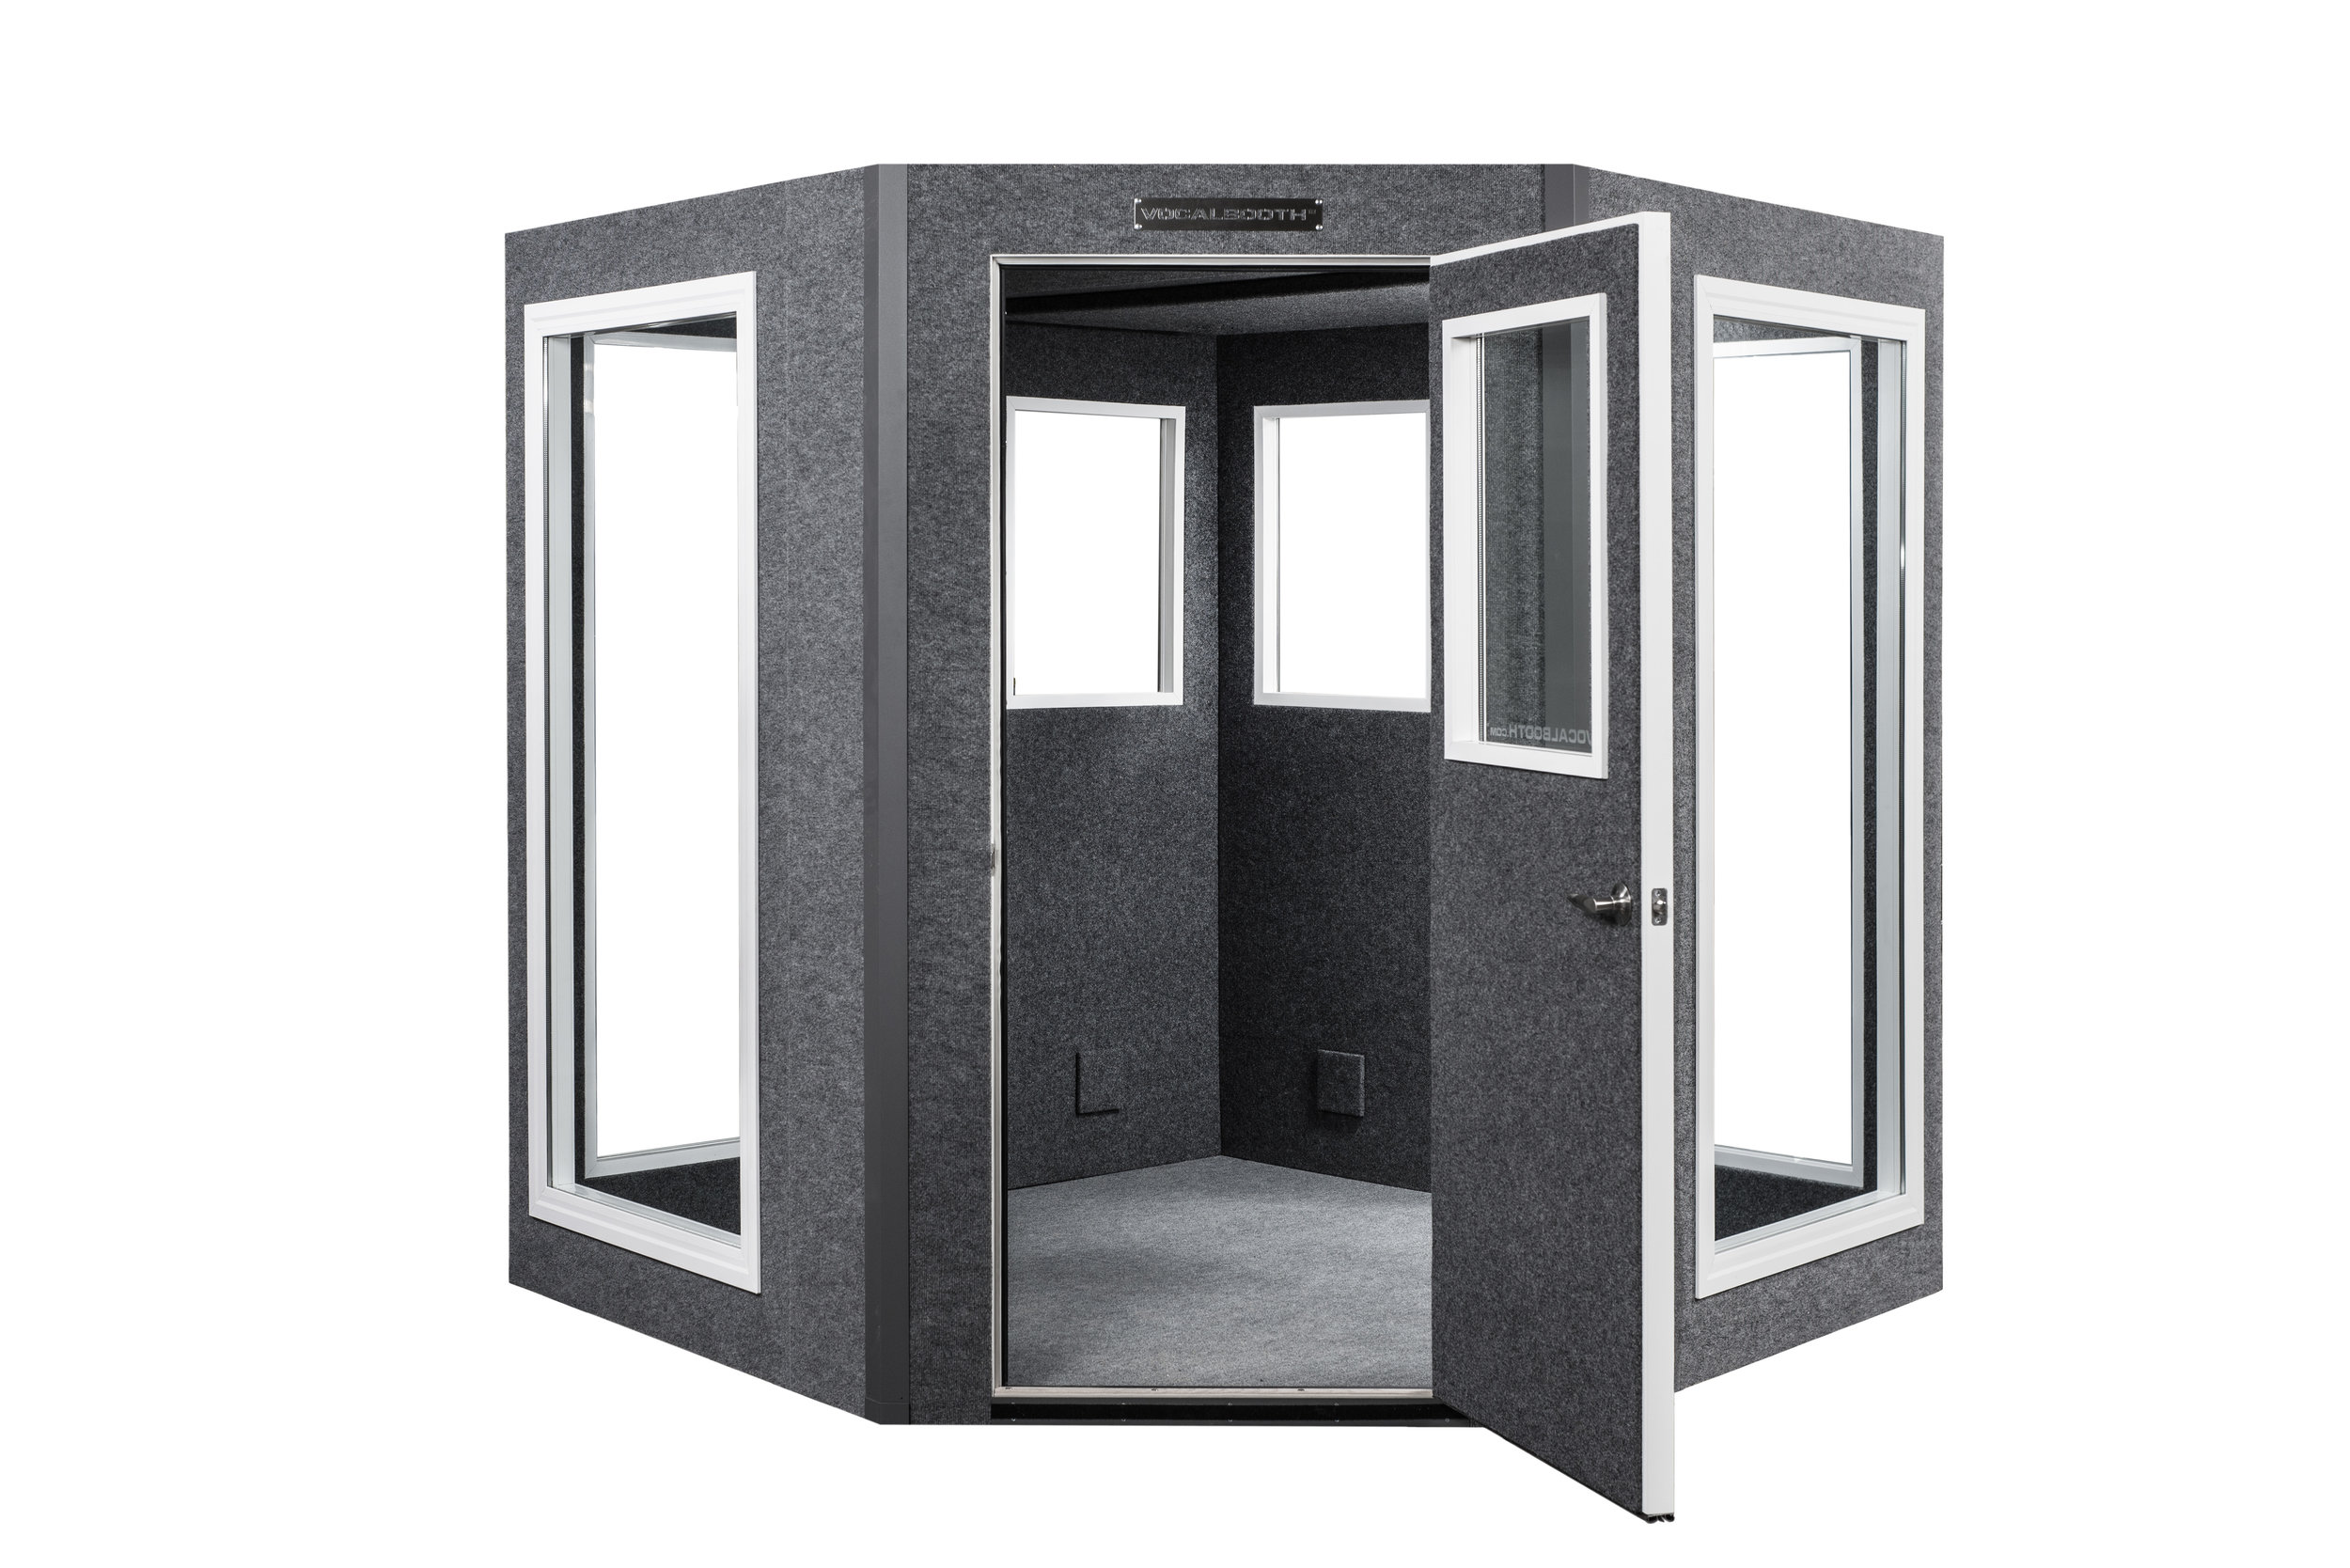 6x3 Platinum Series Windows